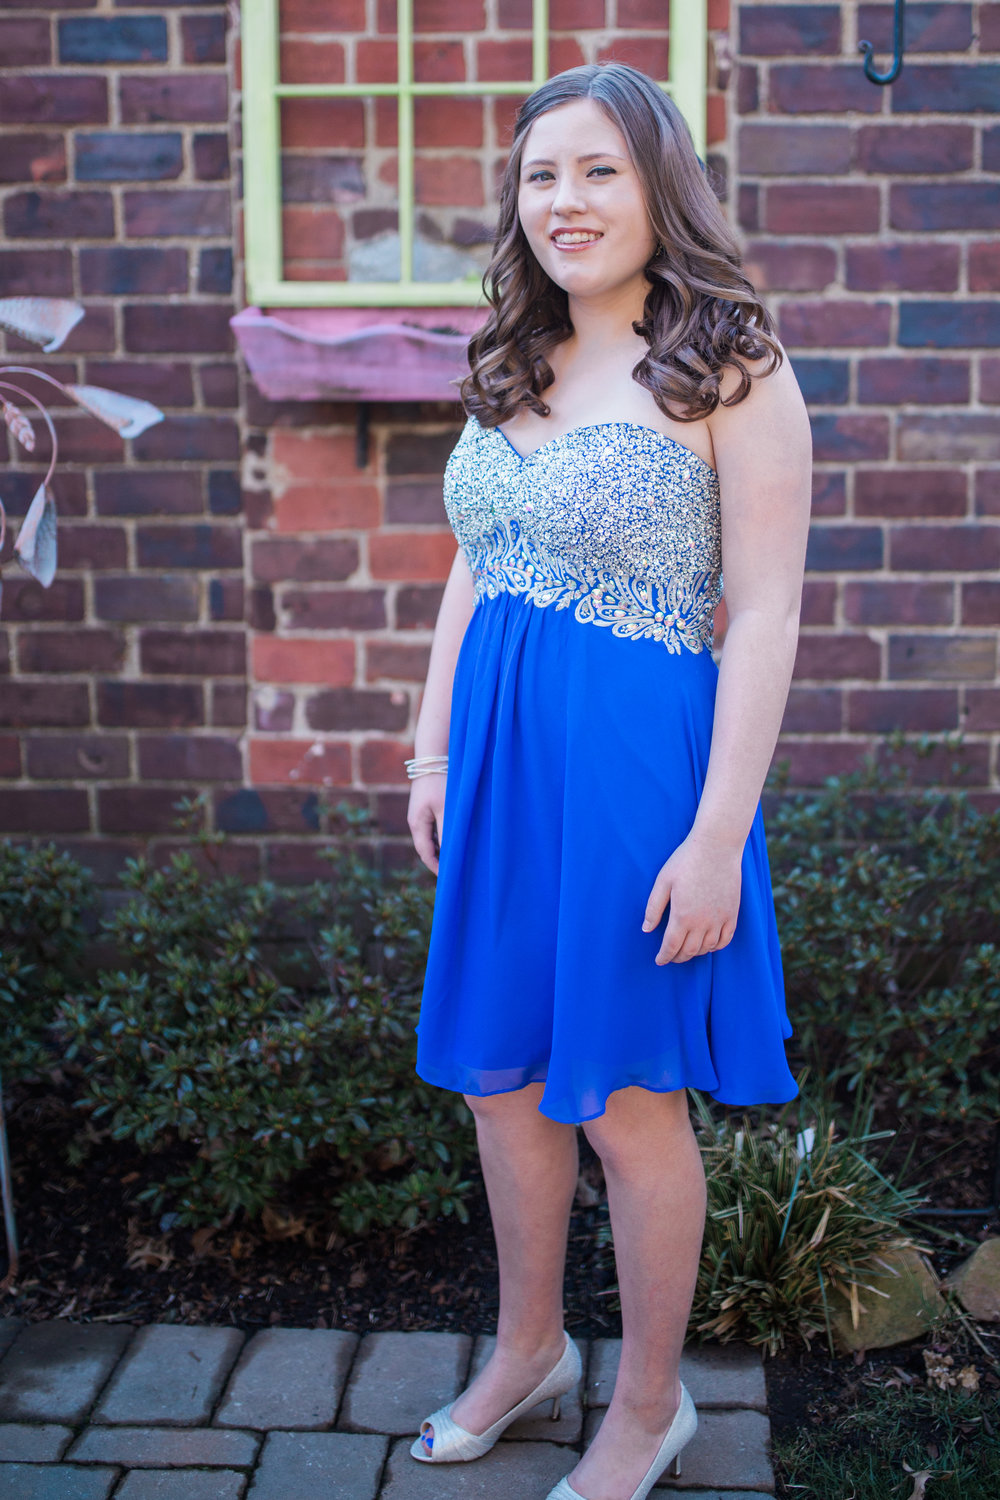 Girl in pretty blue dress with rustic window and brick wall